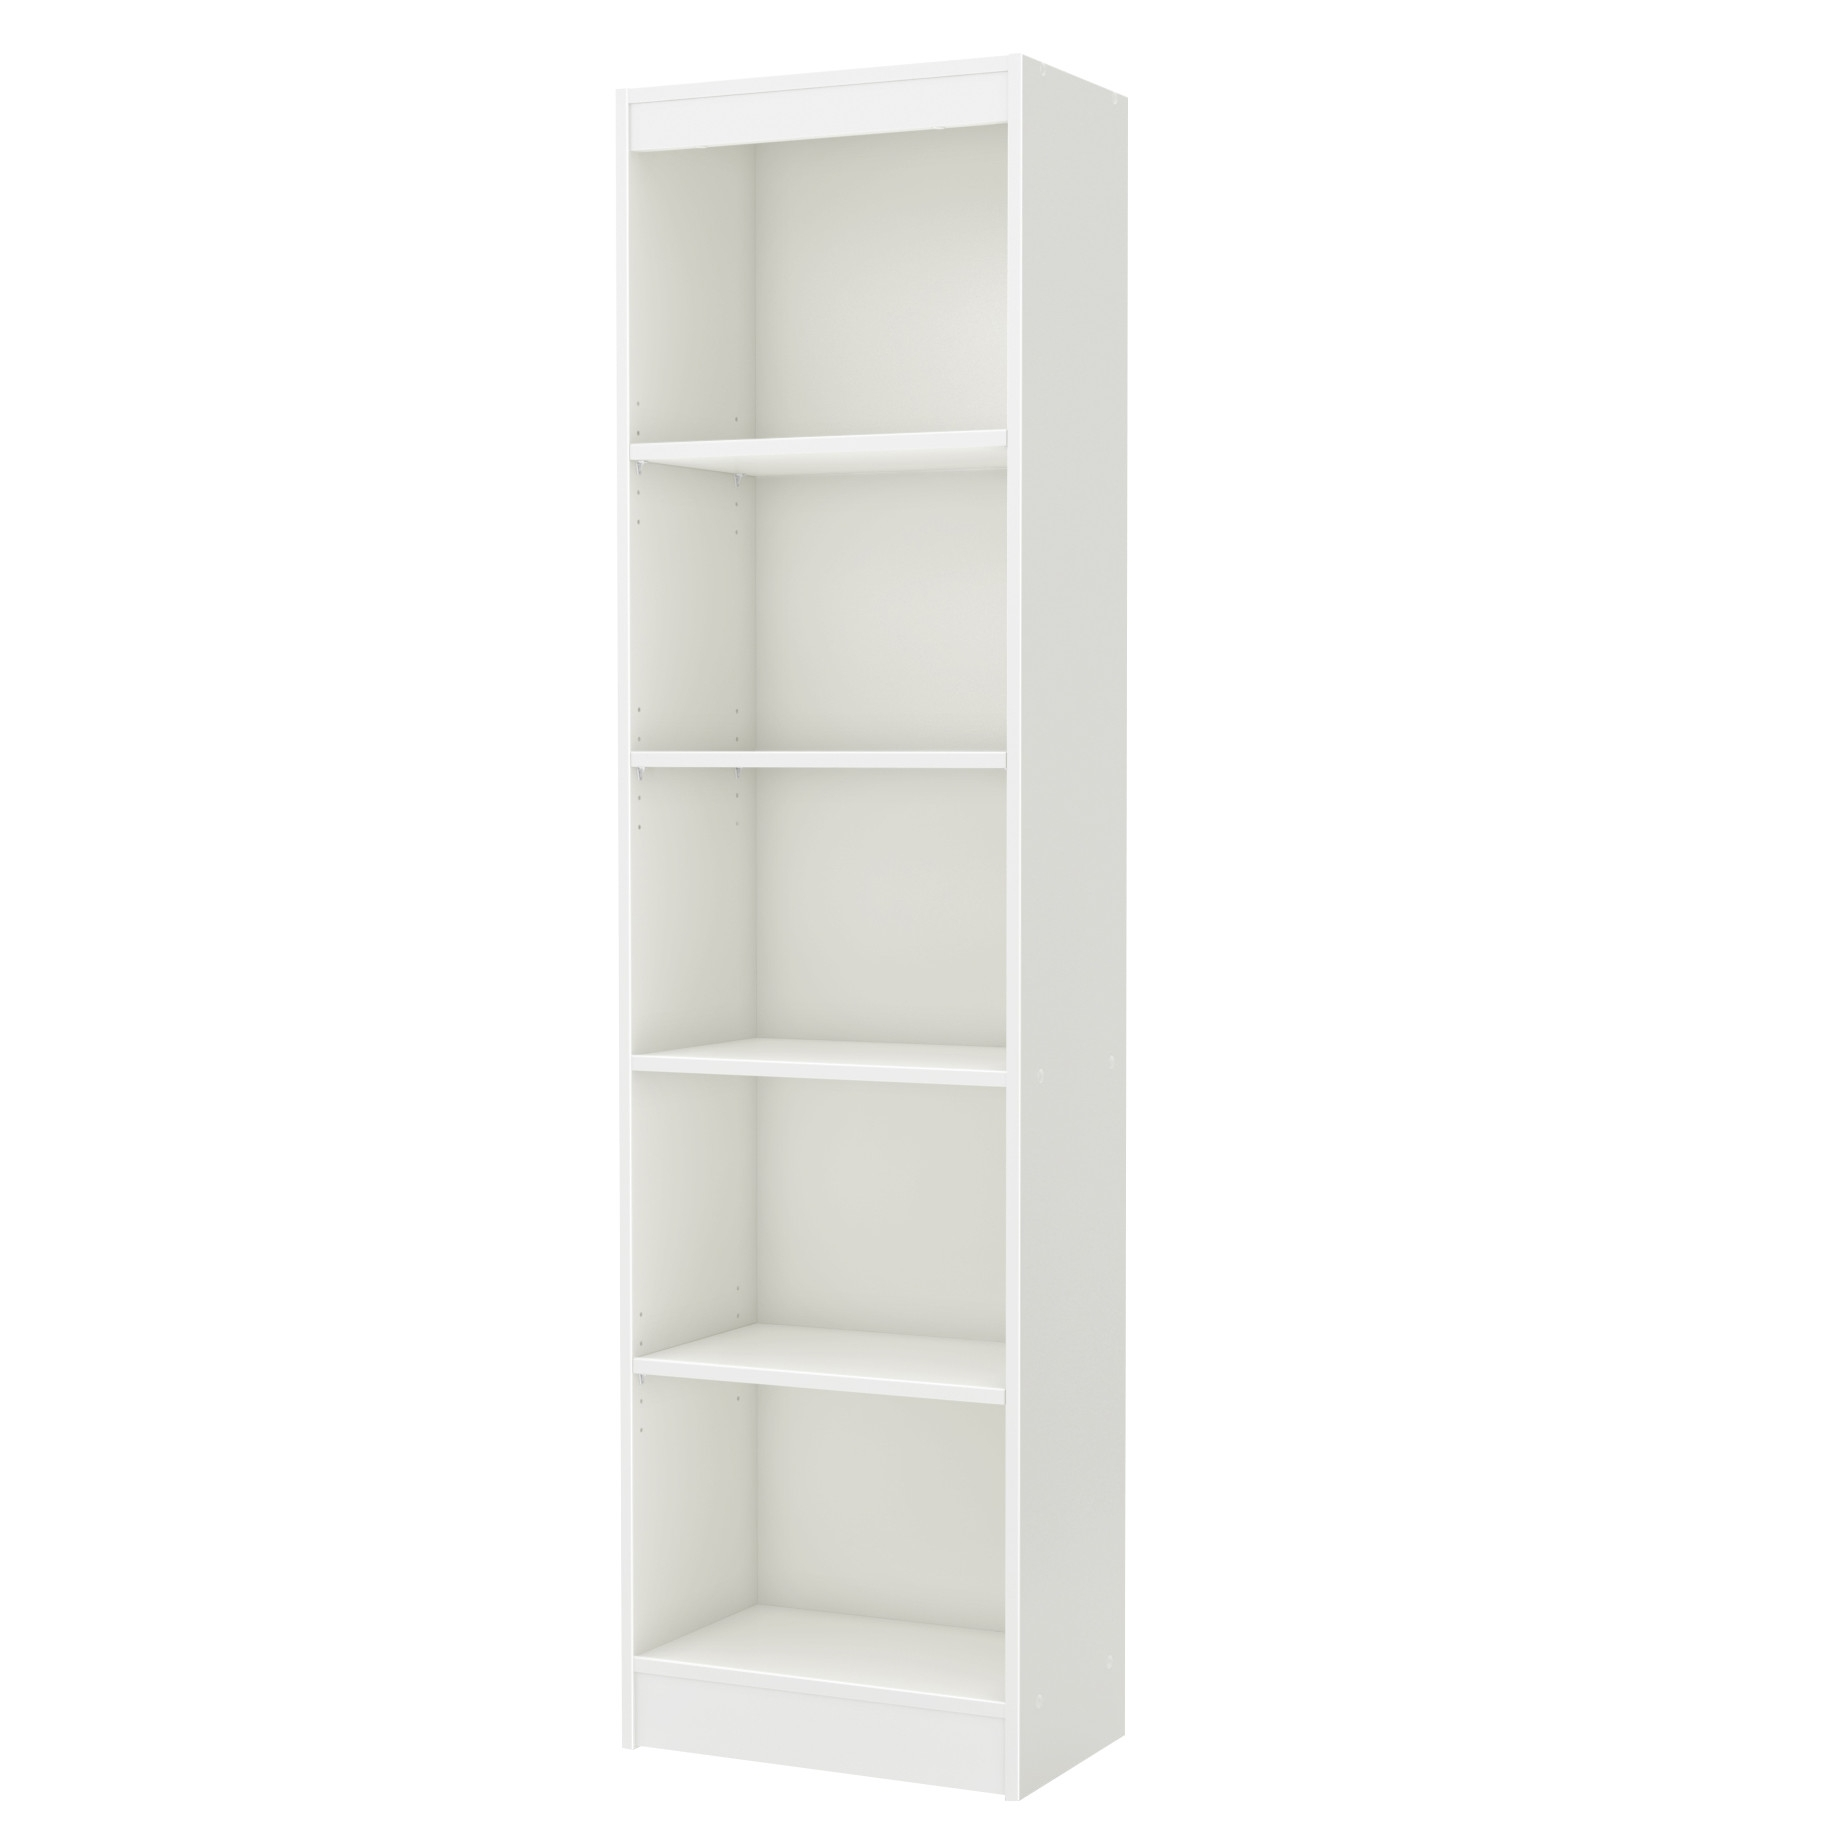 Ikea Cupboard Maybe Kmart Ox And Light Box Mirrors On: Best 15+ Of Kmart Bookcases